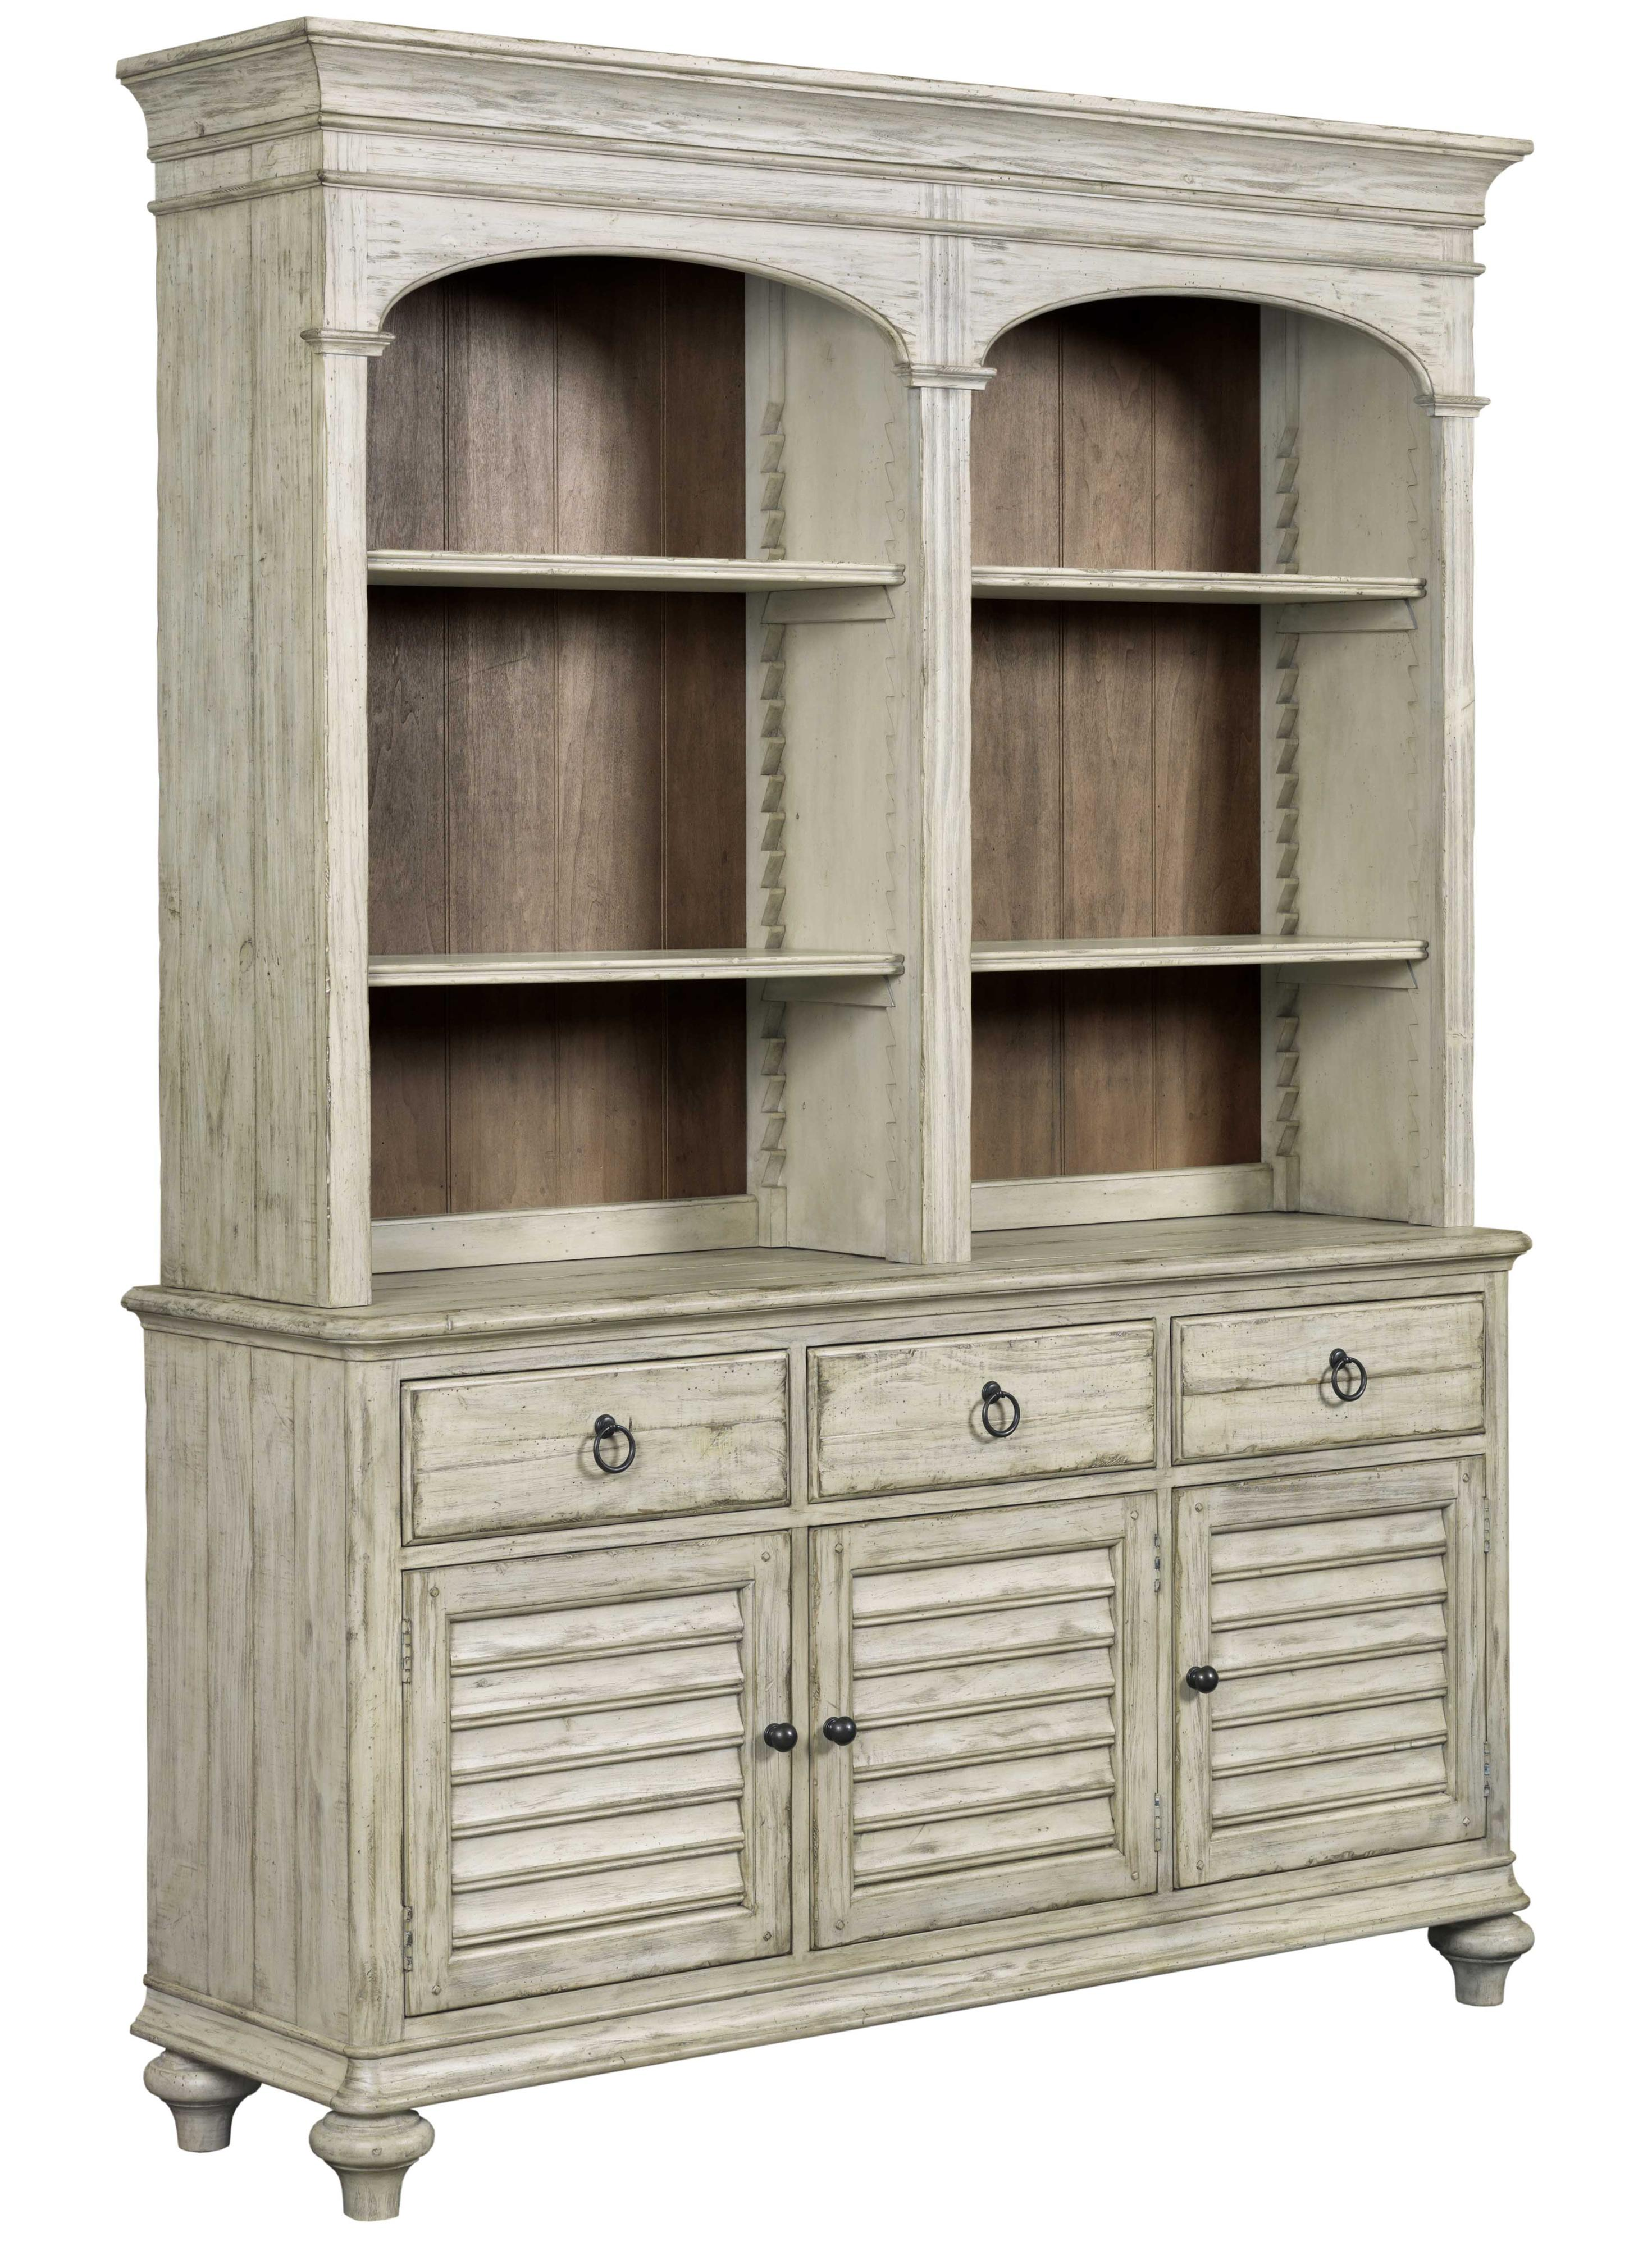 China cabinet with 4 shelves and 3 drawers and 3 doors by kincaid china cabinet with 4 shelves and 3 drawers and 3 doors china cabinet eventshaper